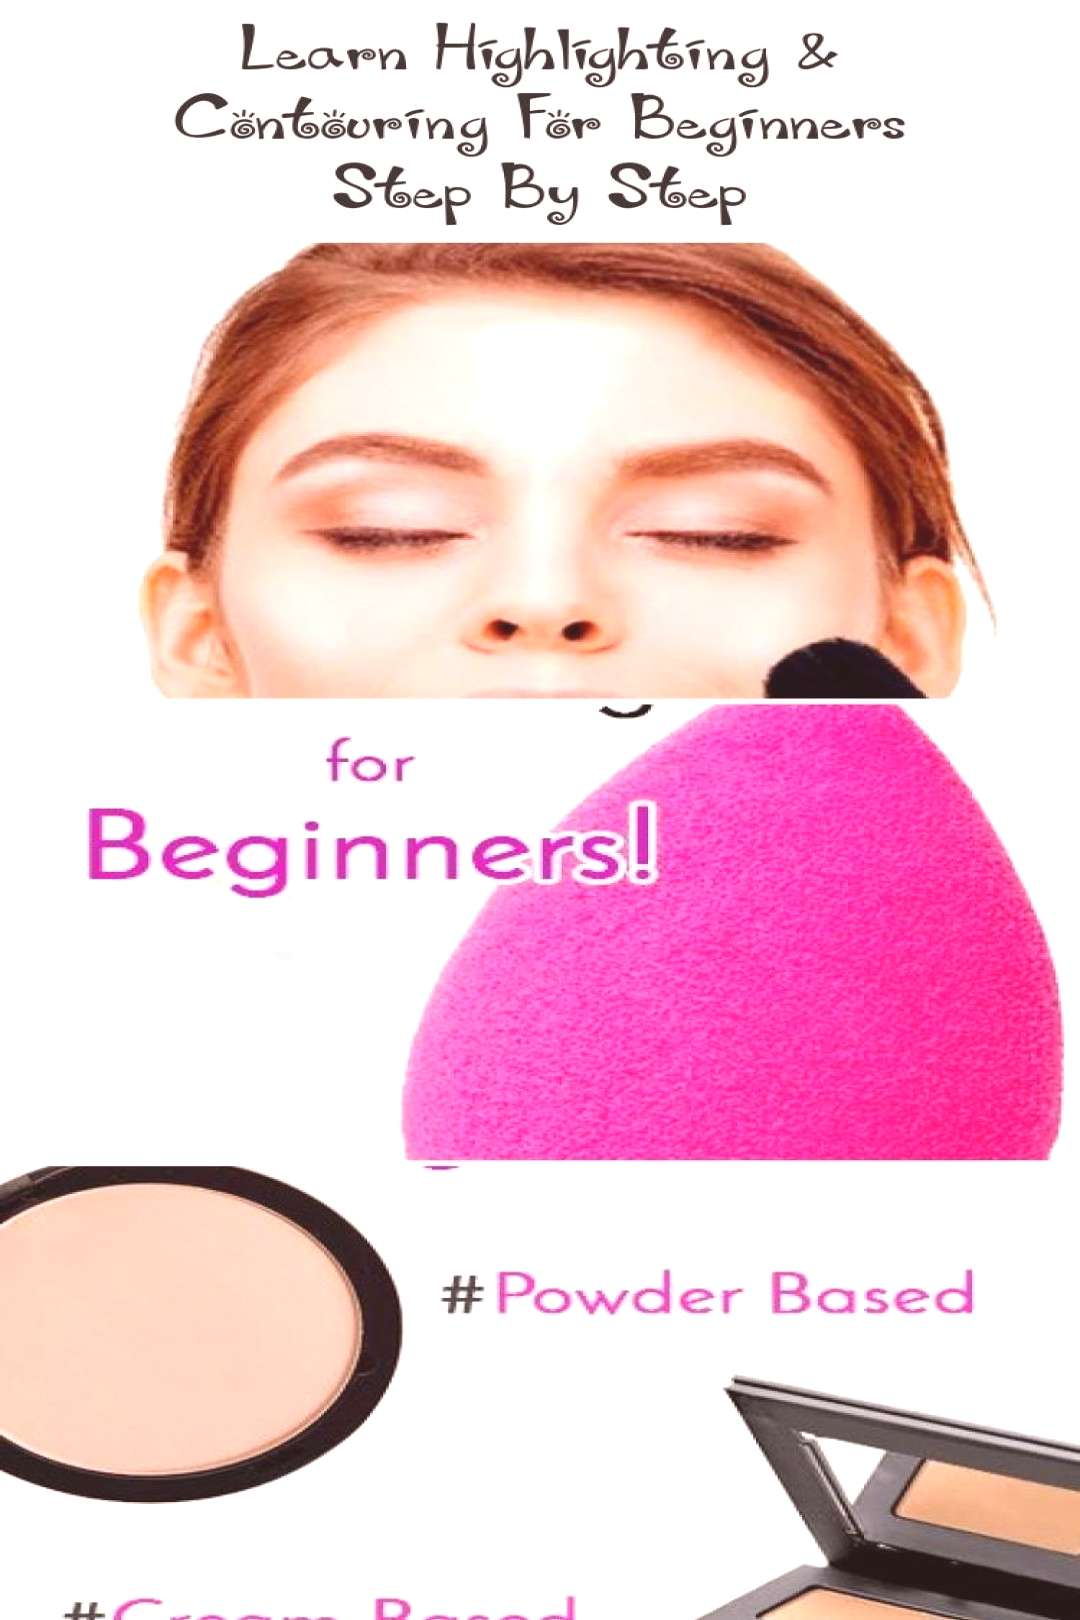 Learn Highlighting amp Contouring For Beginners Step By Step… - Skys Blog - Hi...#beginners